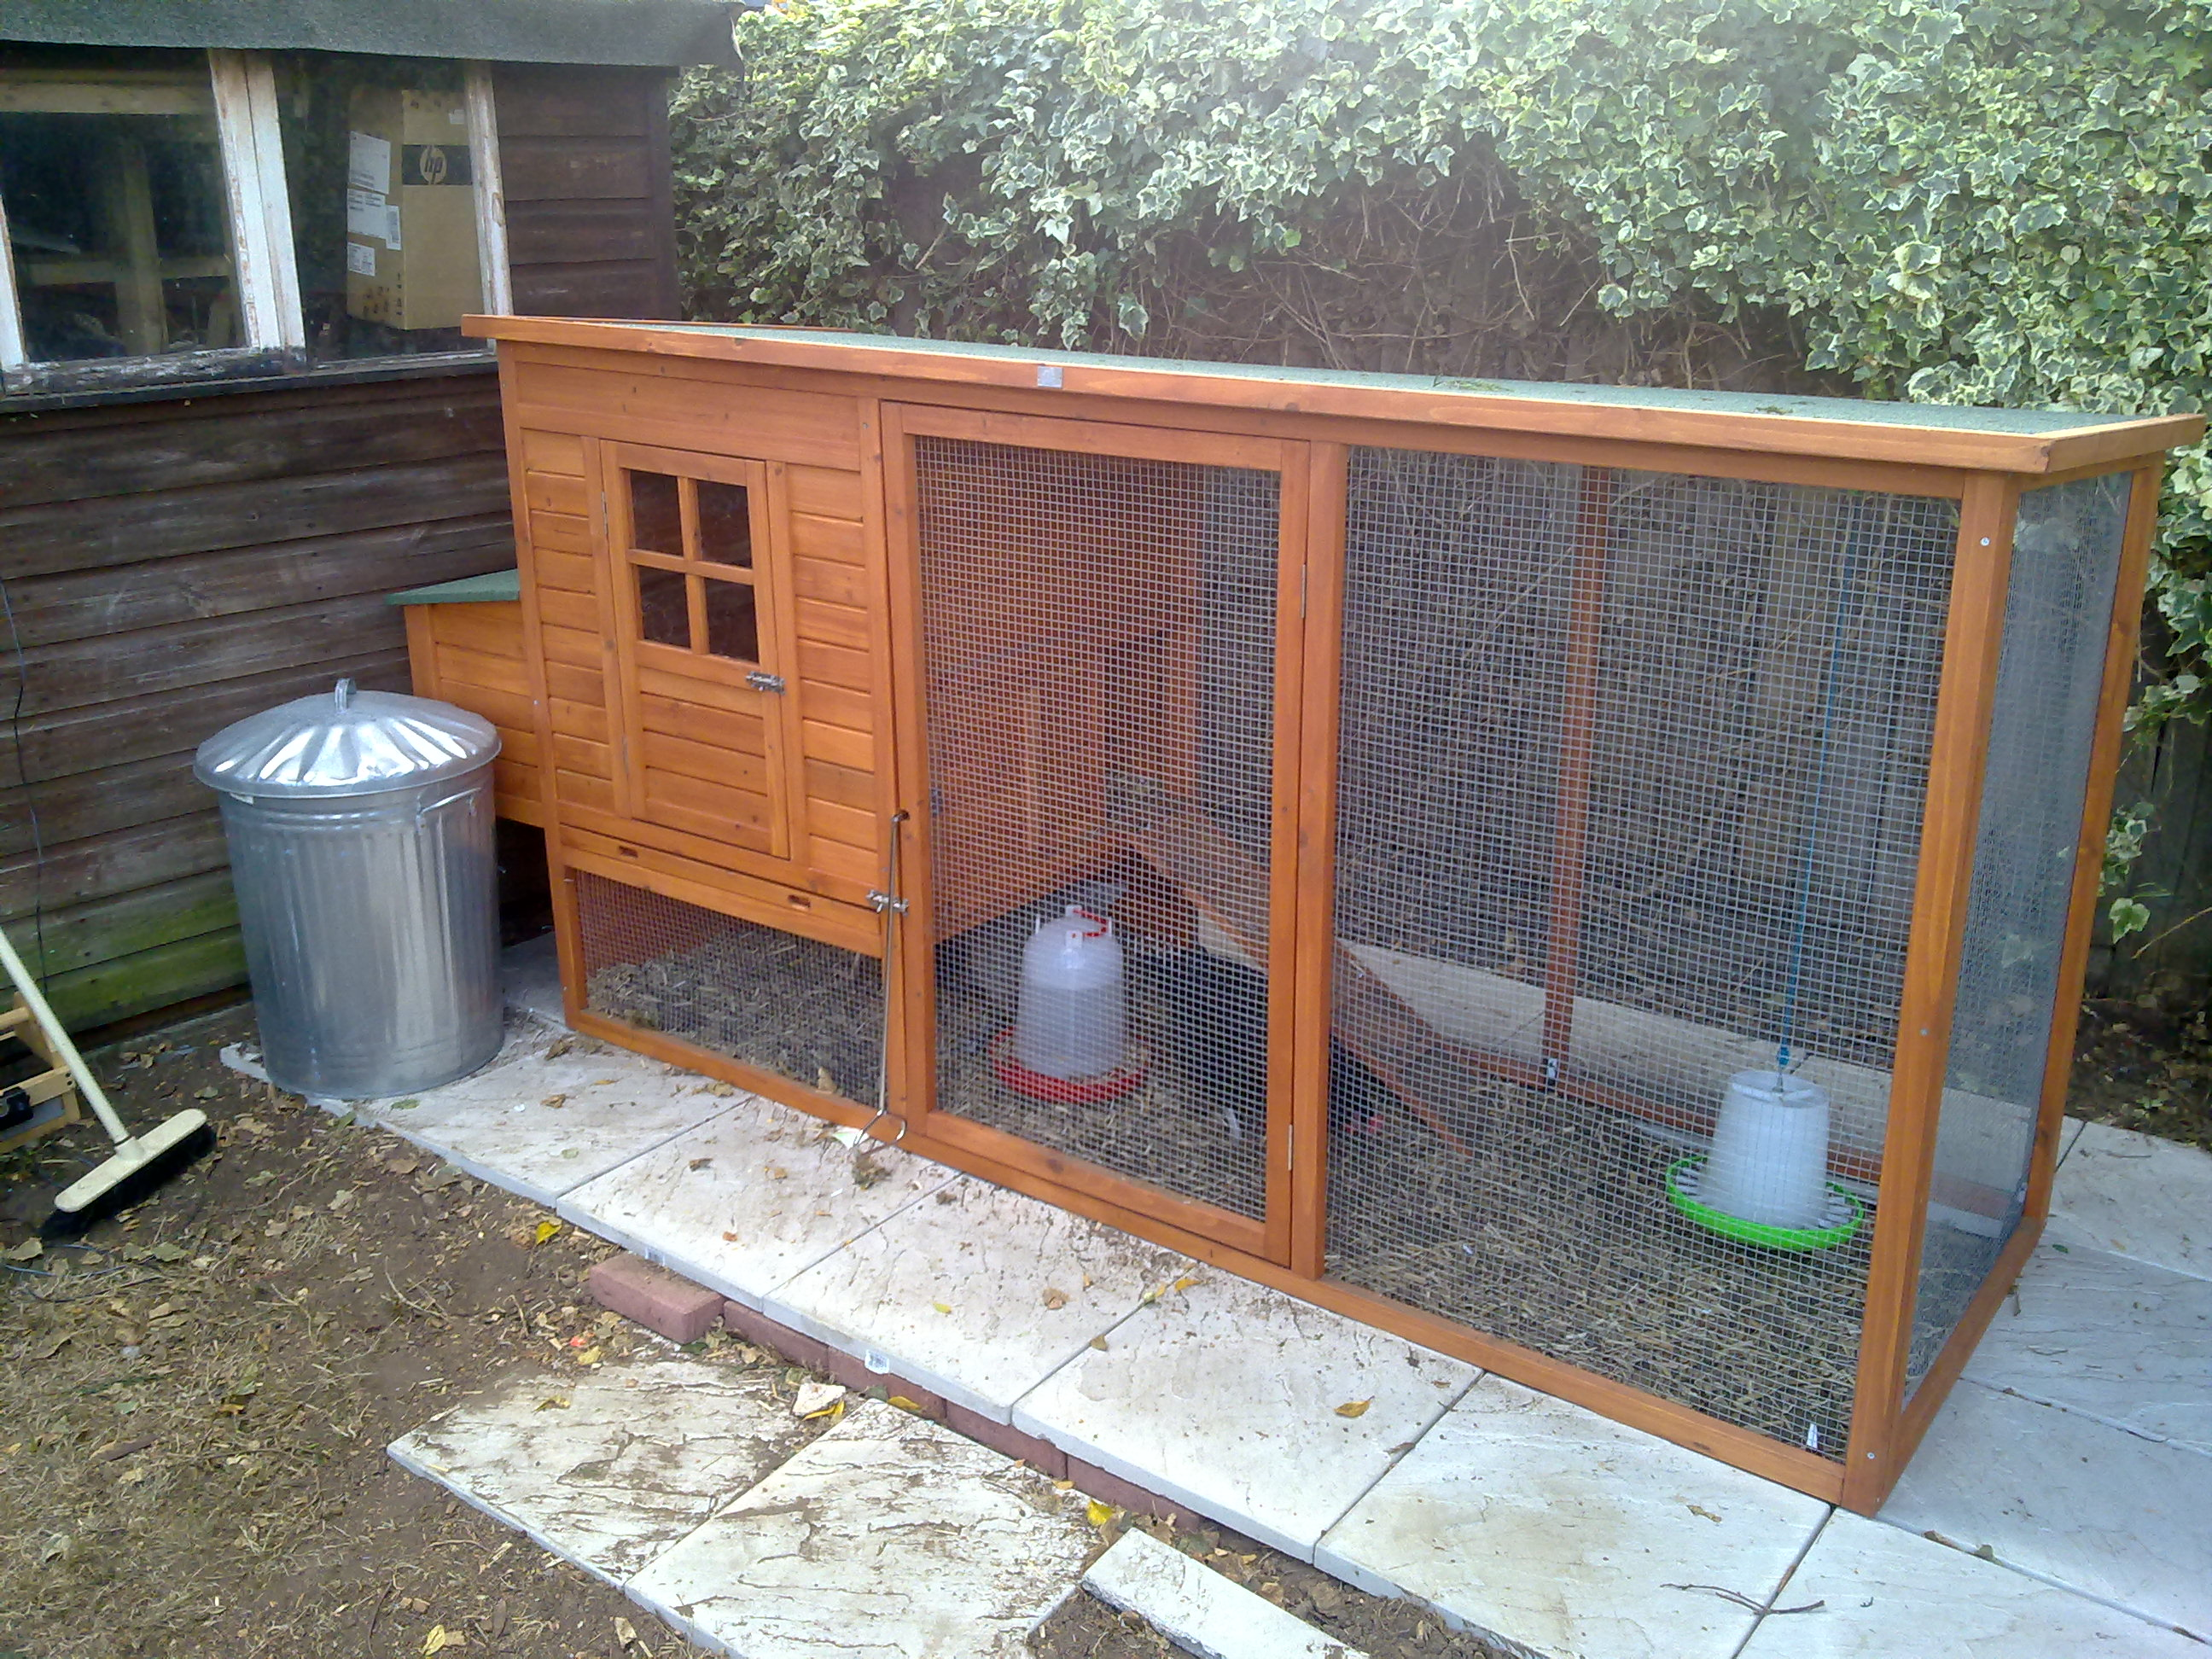 The first chicken house, bought from ComfyPets